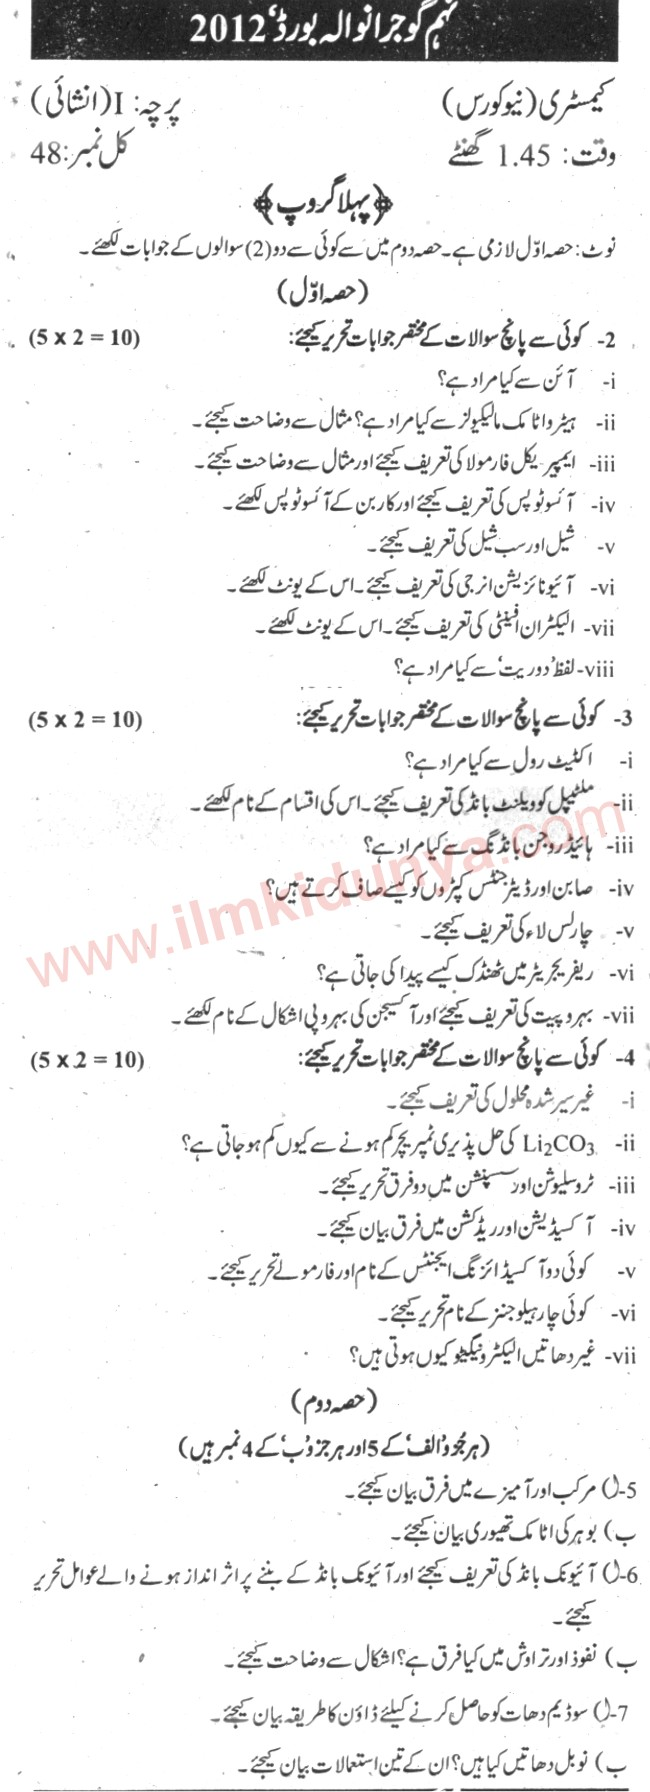 Past Papers 2012 Gujranwala Board 9th Class Chemistry